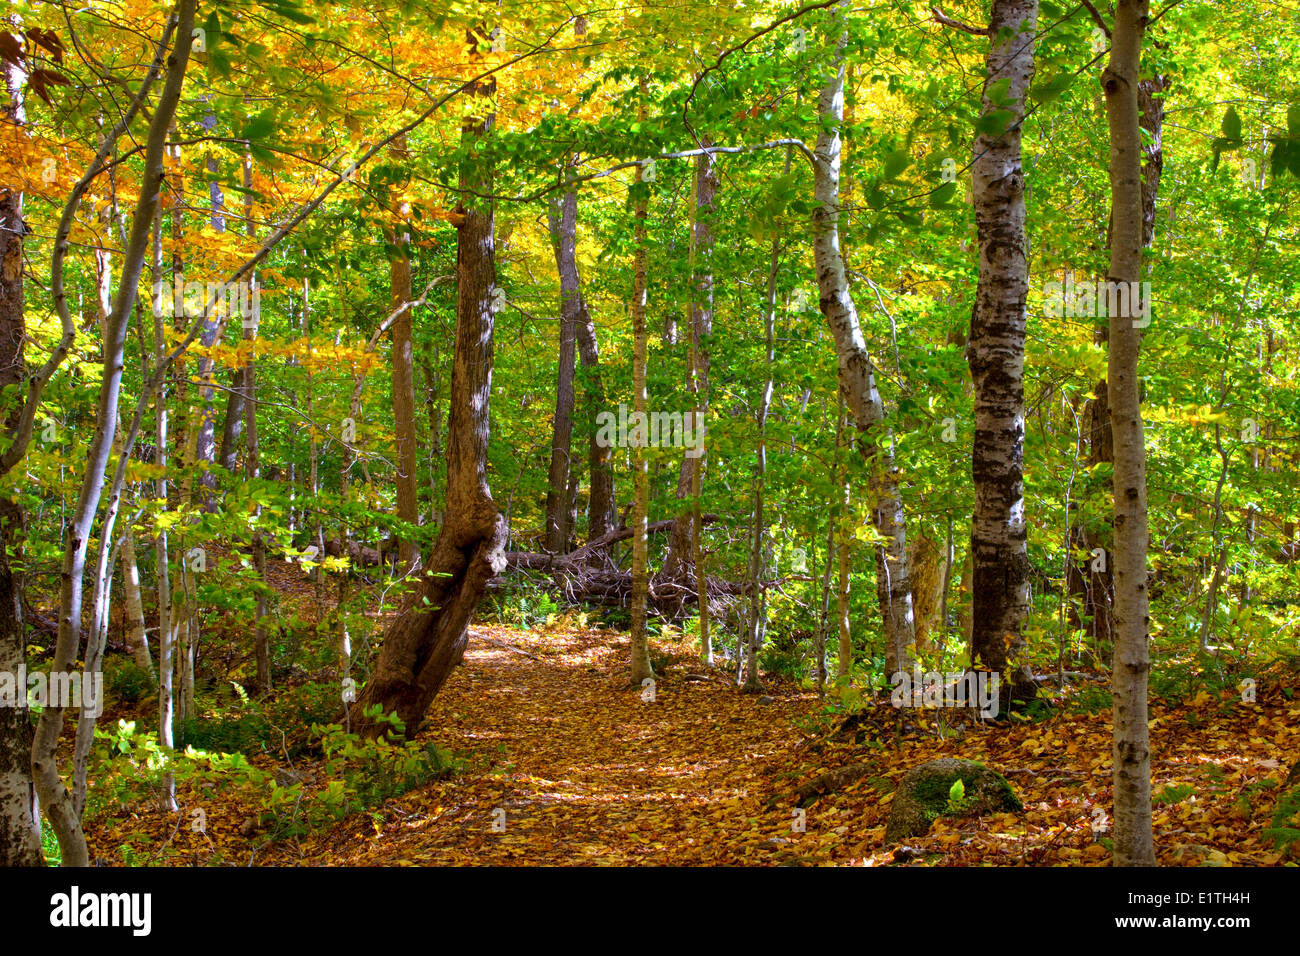 350 year old forest, Lone Shieling, Cape Breton Highlands National Park, Cape Breton, Nova Scotia, Canada - Stock Image